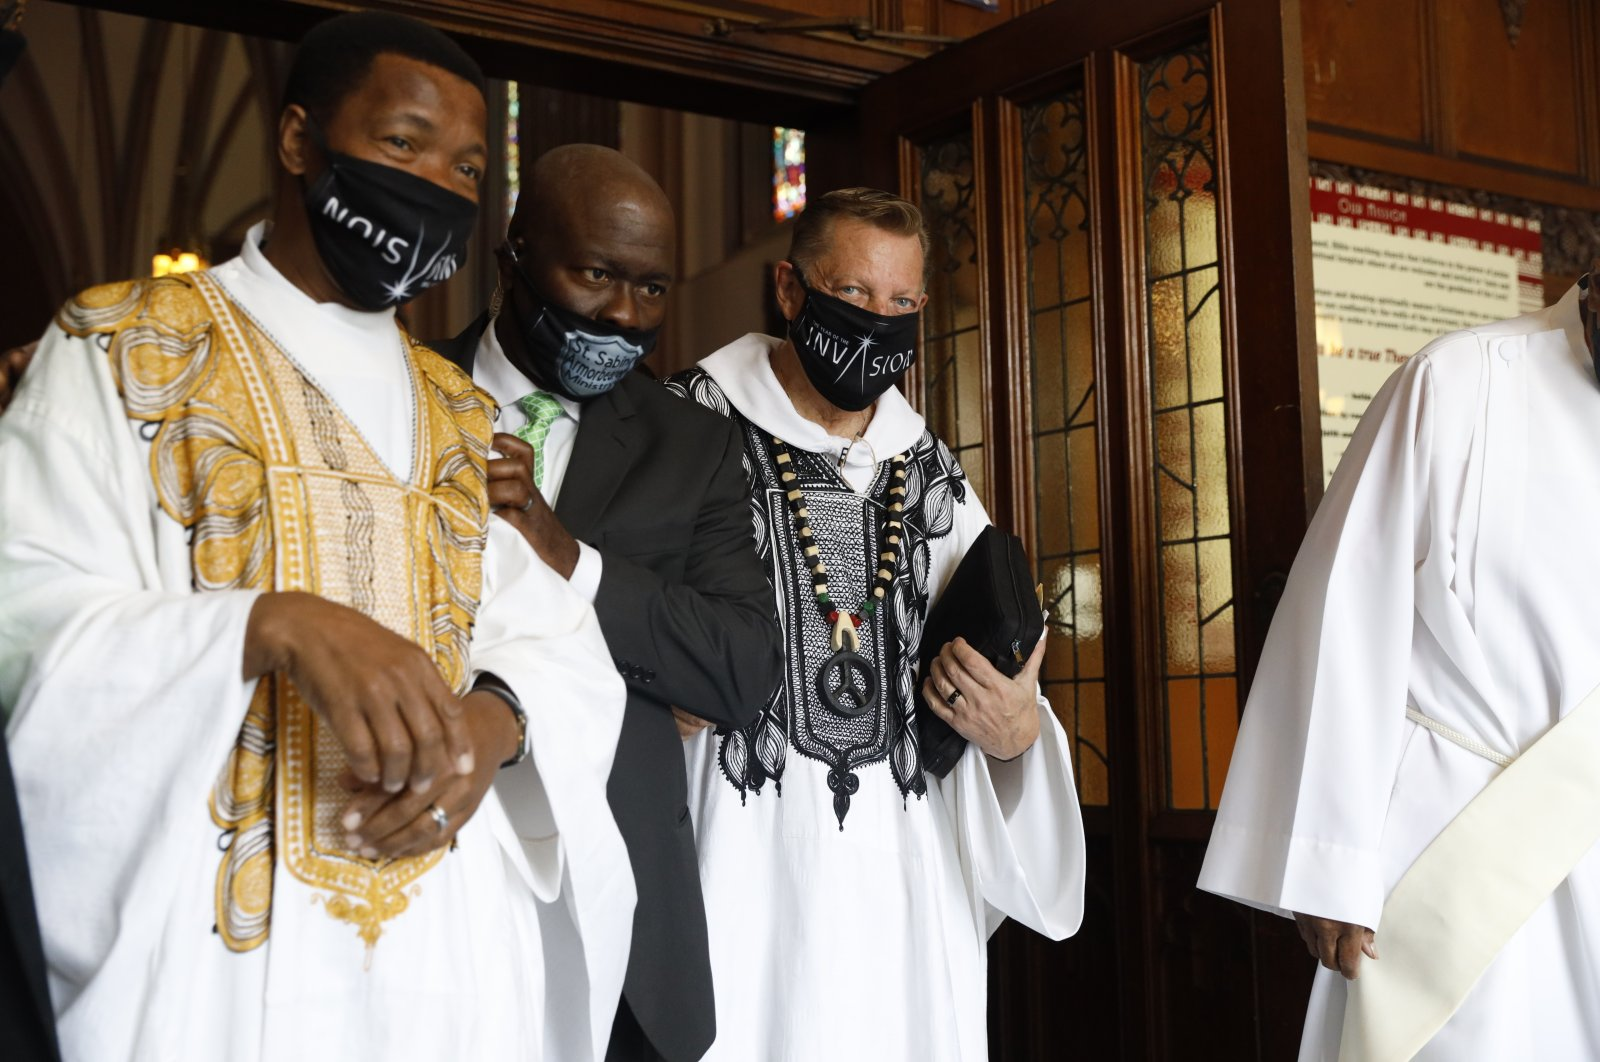 Rev. Michael Pfleger exits the main hall after conducting his first Sunday church service as a senior pastor at St. Sabina Catholic Church following his reinstatement by Archdiocese of Chicago after decades-old sexual abuse allegations against minors, in Chicago, U.S., June 6, 2021. (AP Photo)